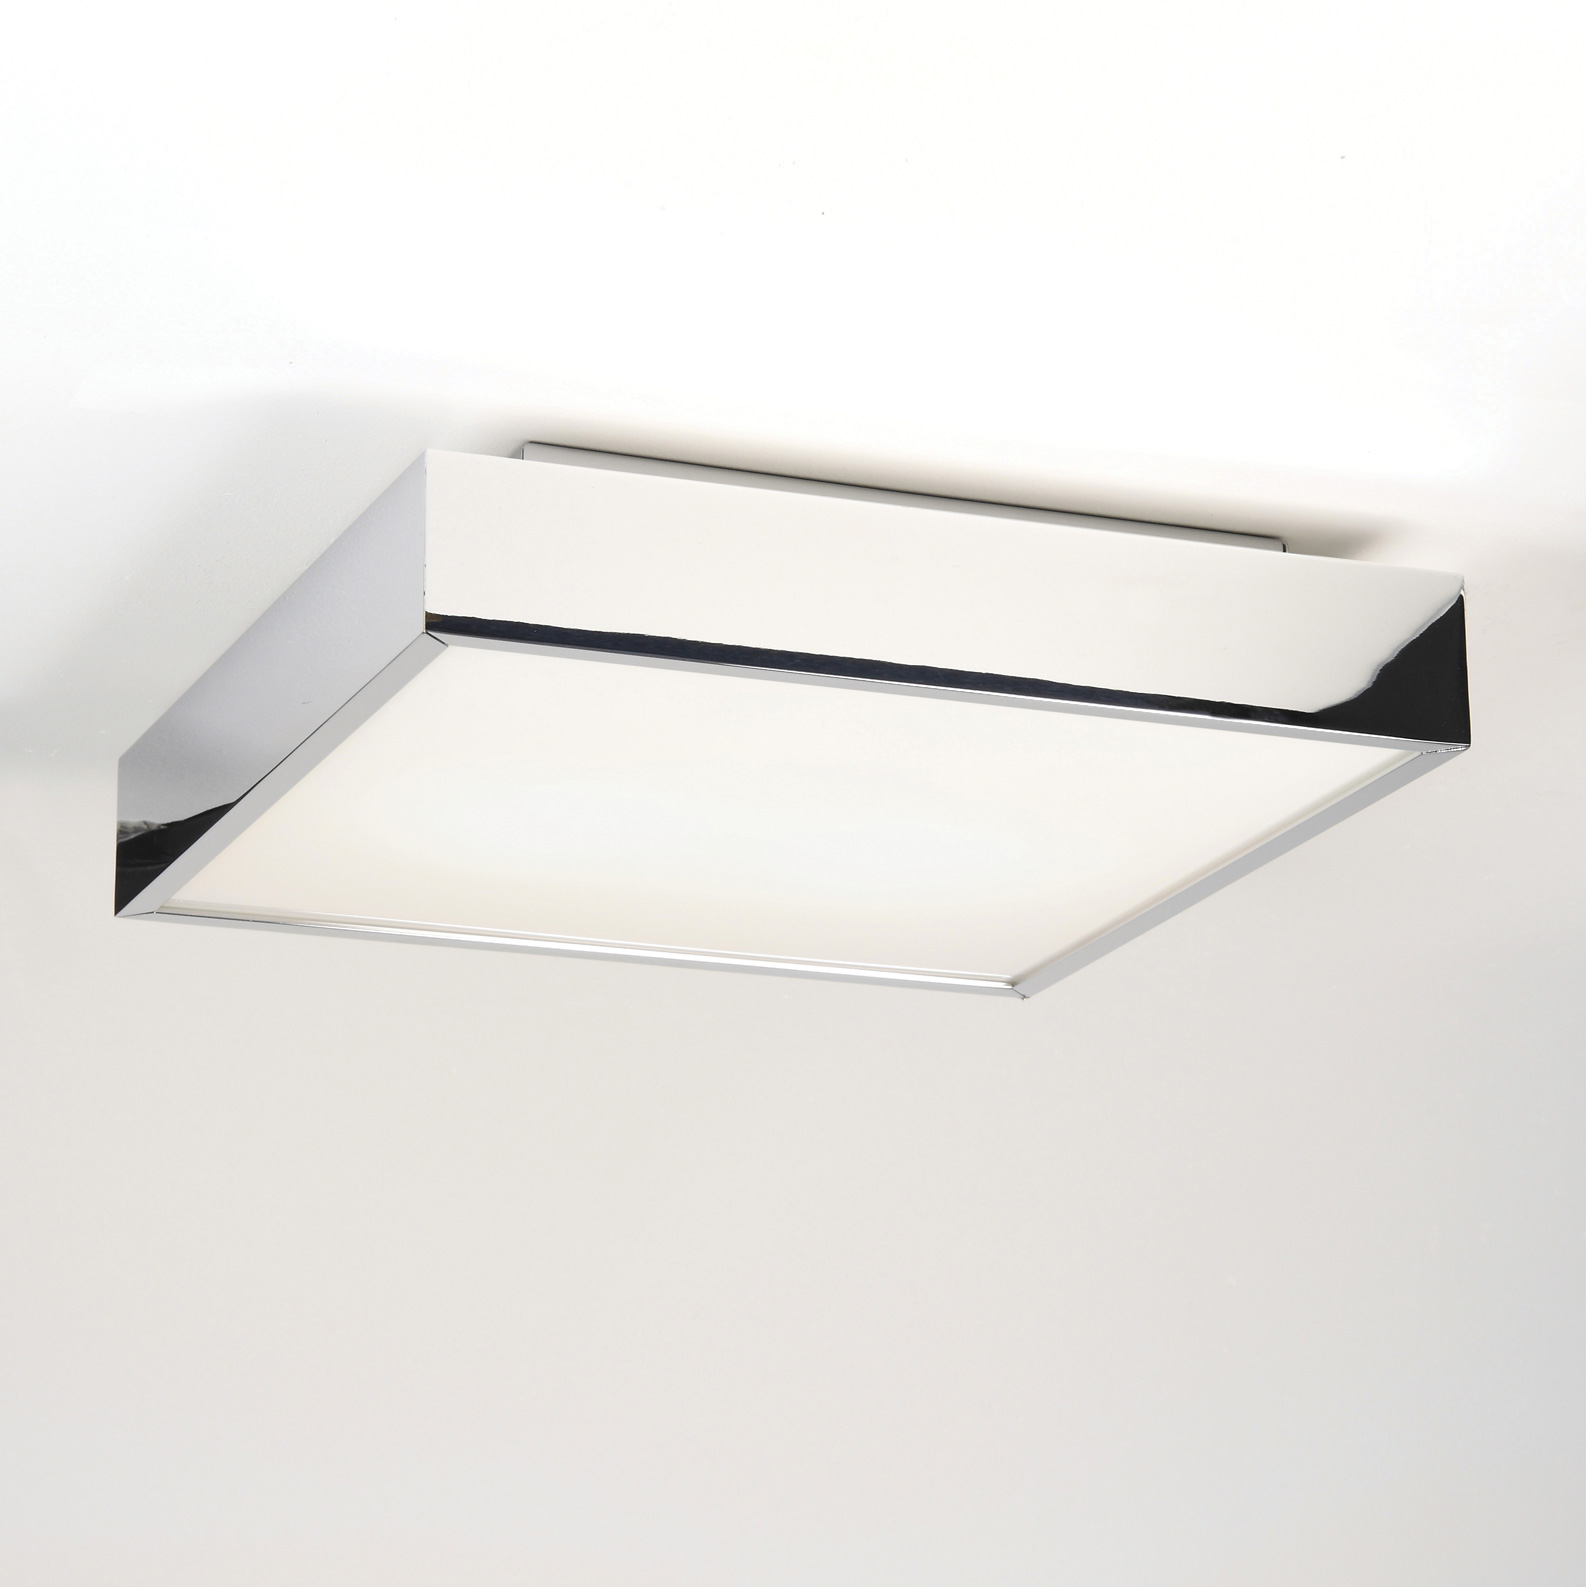 7159-Taketa-LED-ceiling